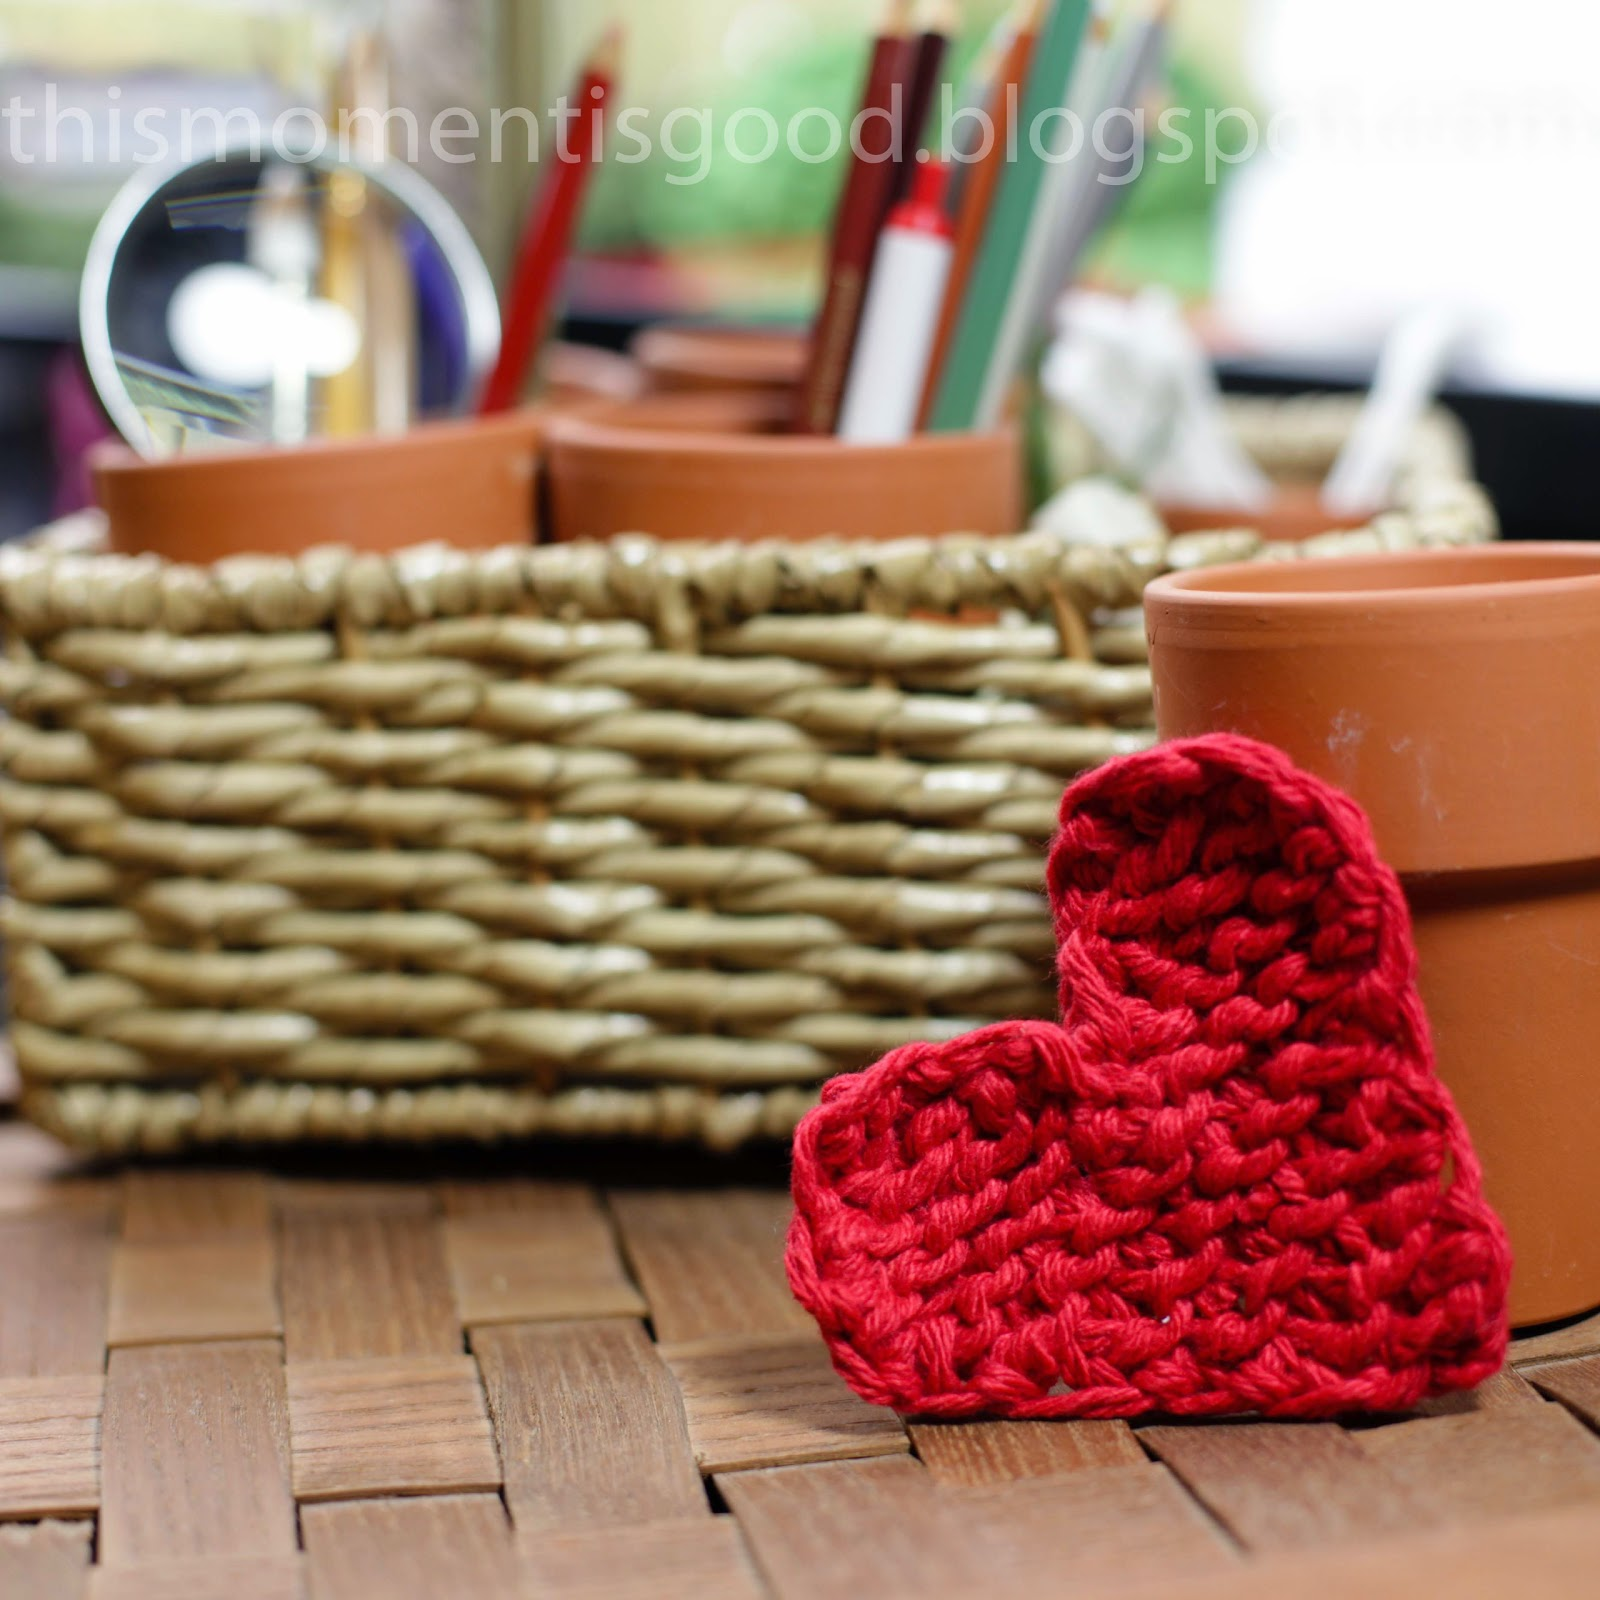 Knitting Loom : Loom knit heart free pattern knitting by this